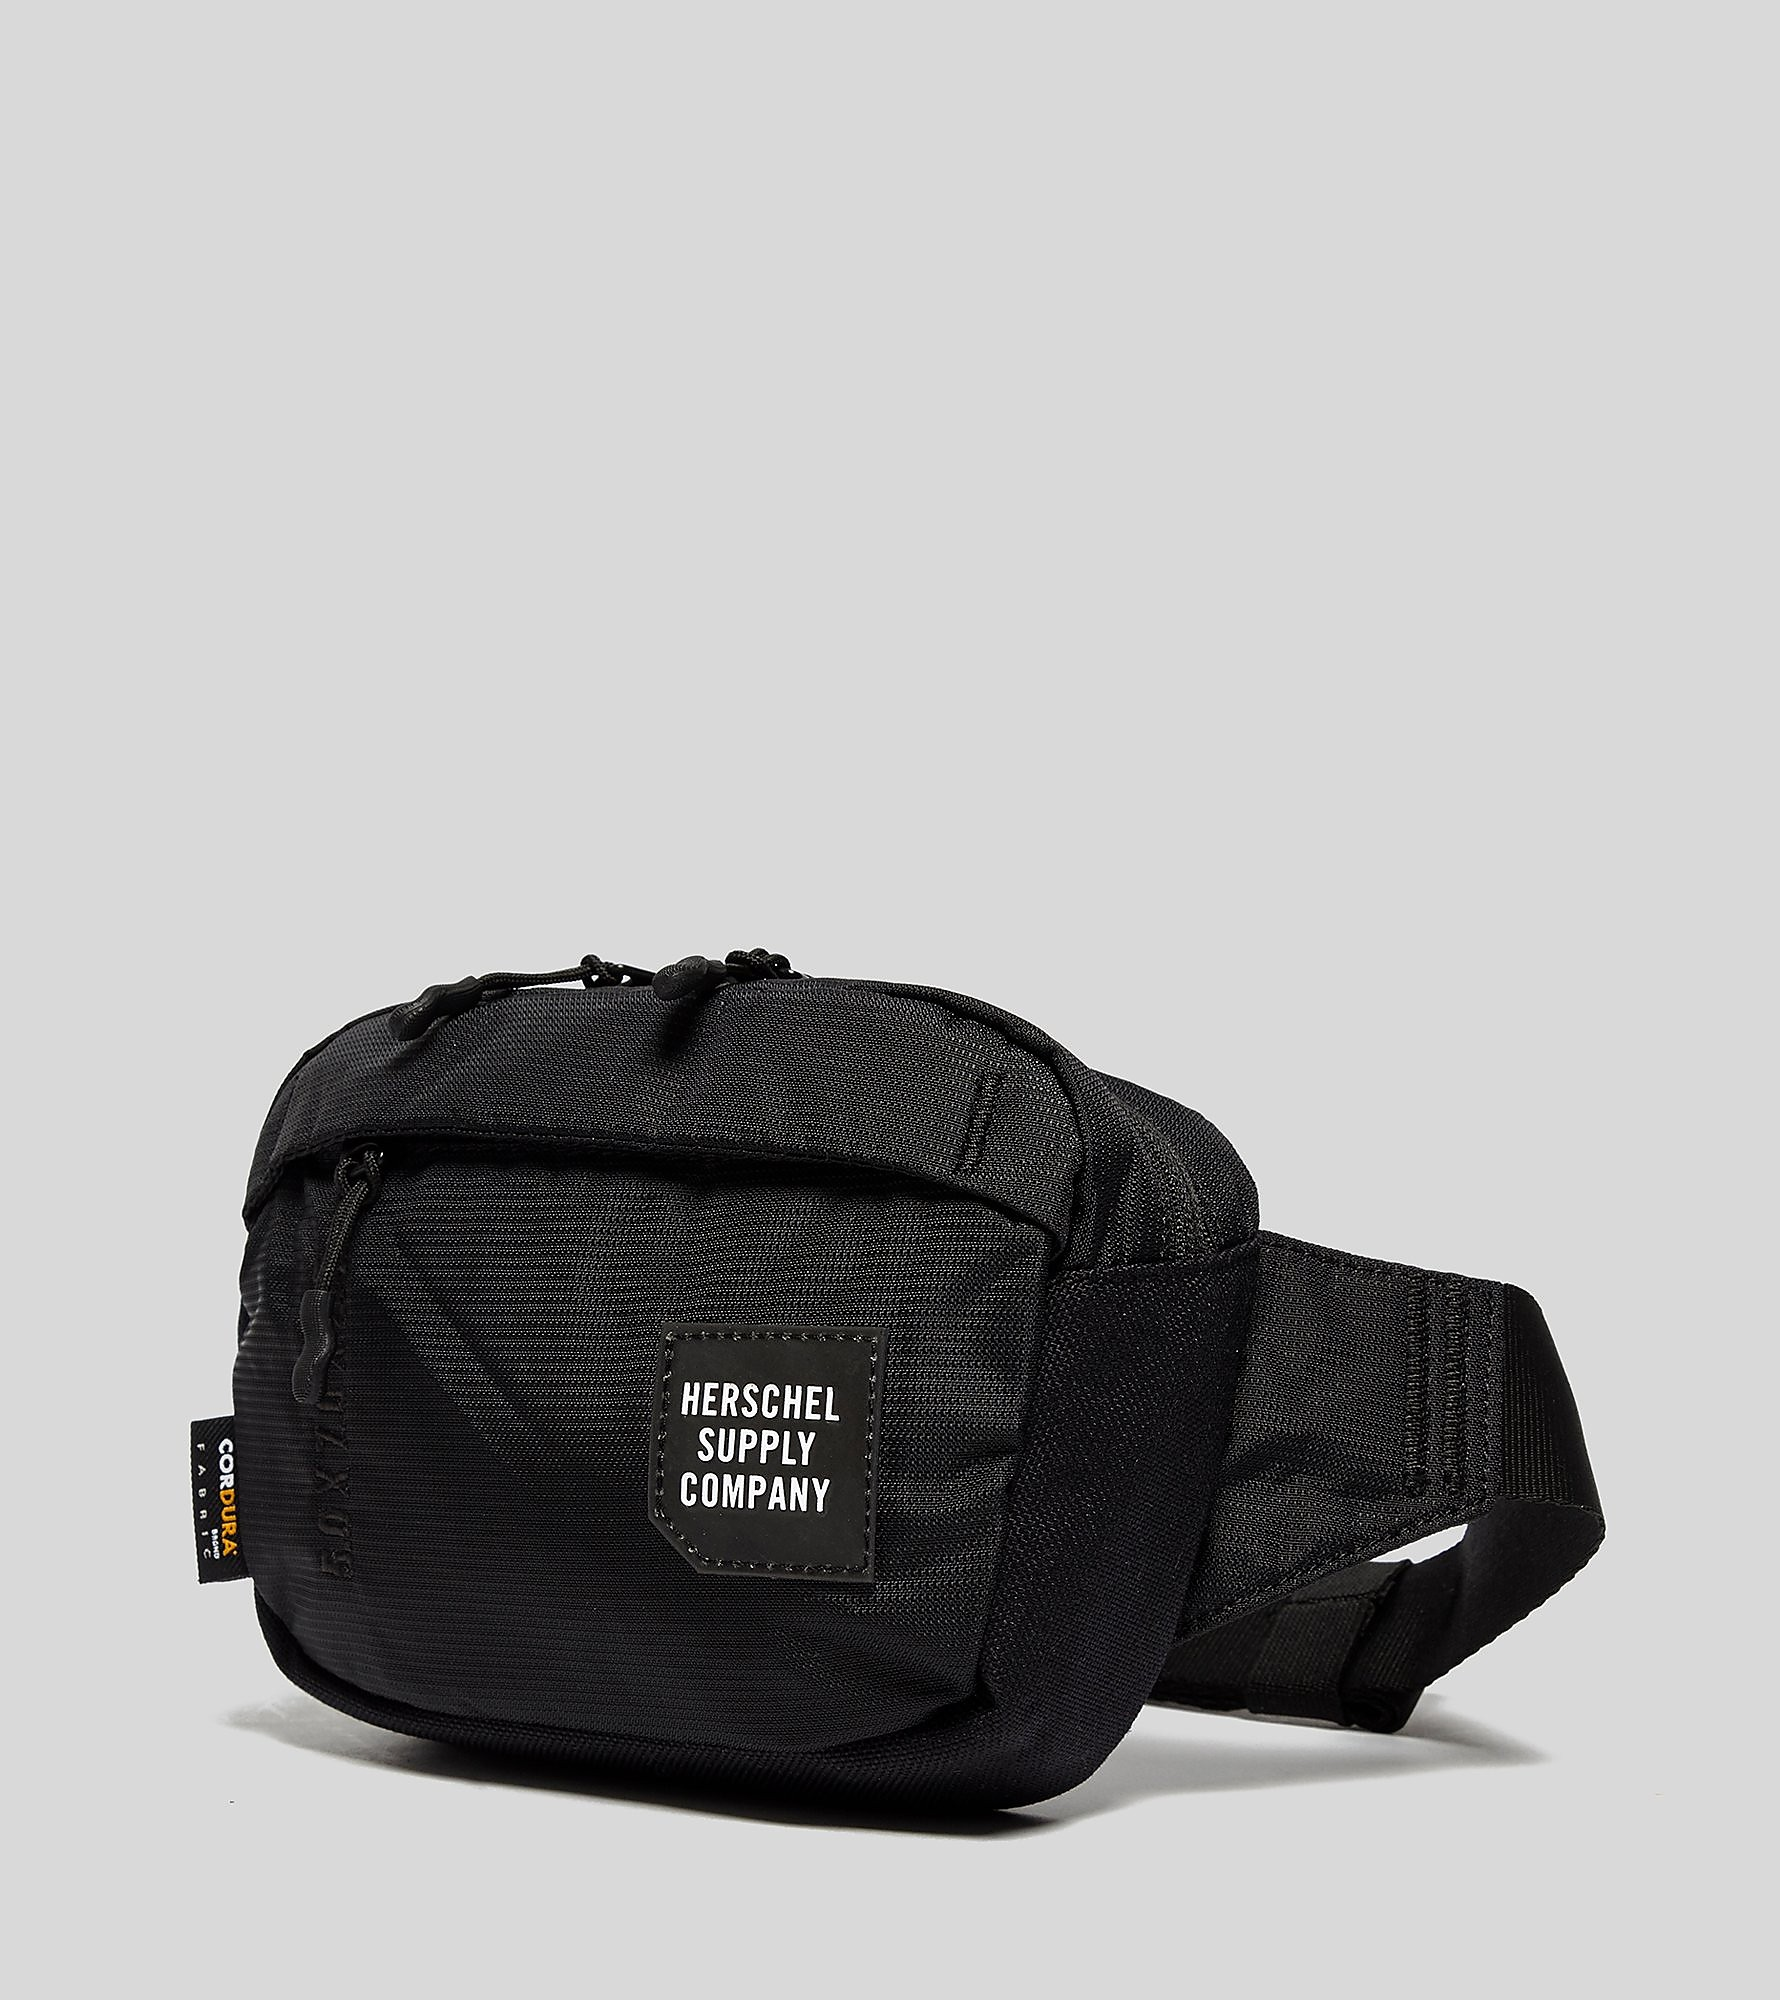 Herschel Supply Co Tour Hip Bag, Black